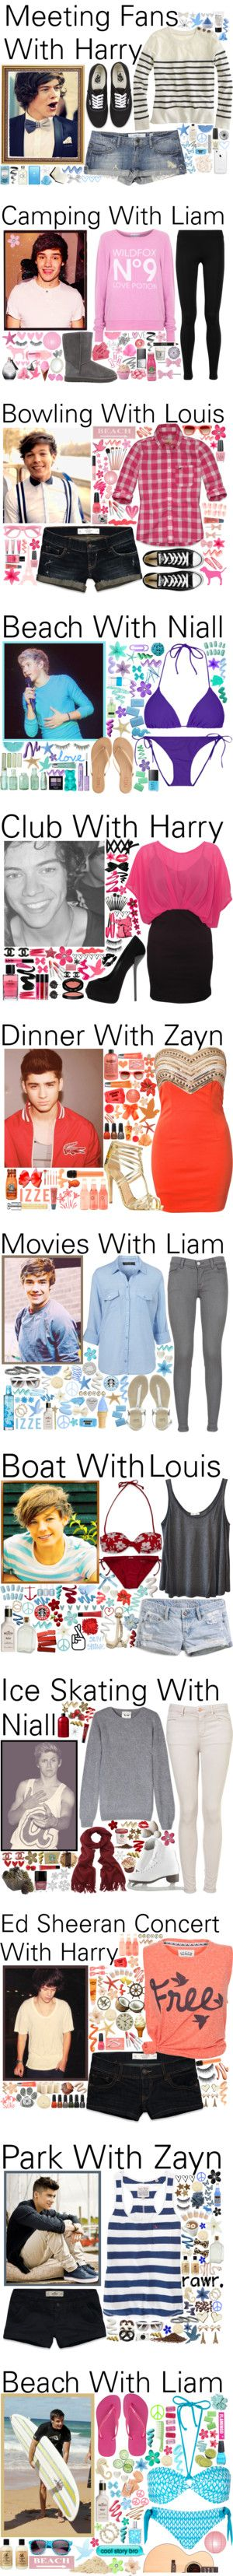 """Outfits 40 - 60 ♥"" by onedirection-outfits ❤ liked on Polyvore"